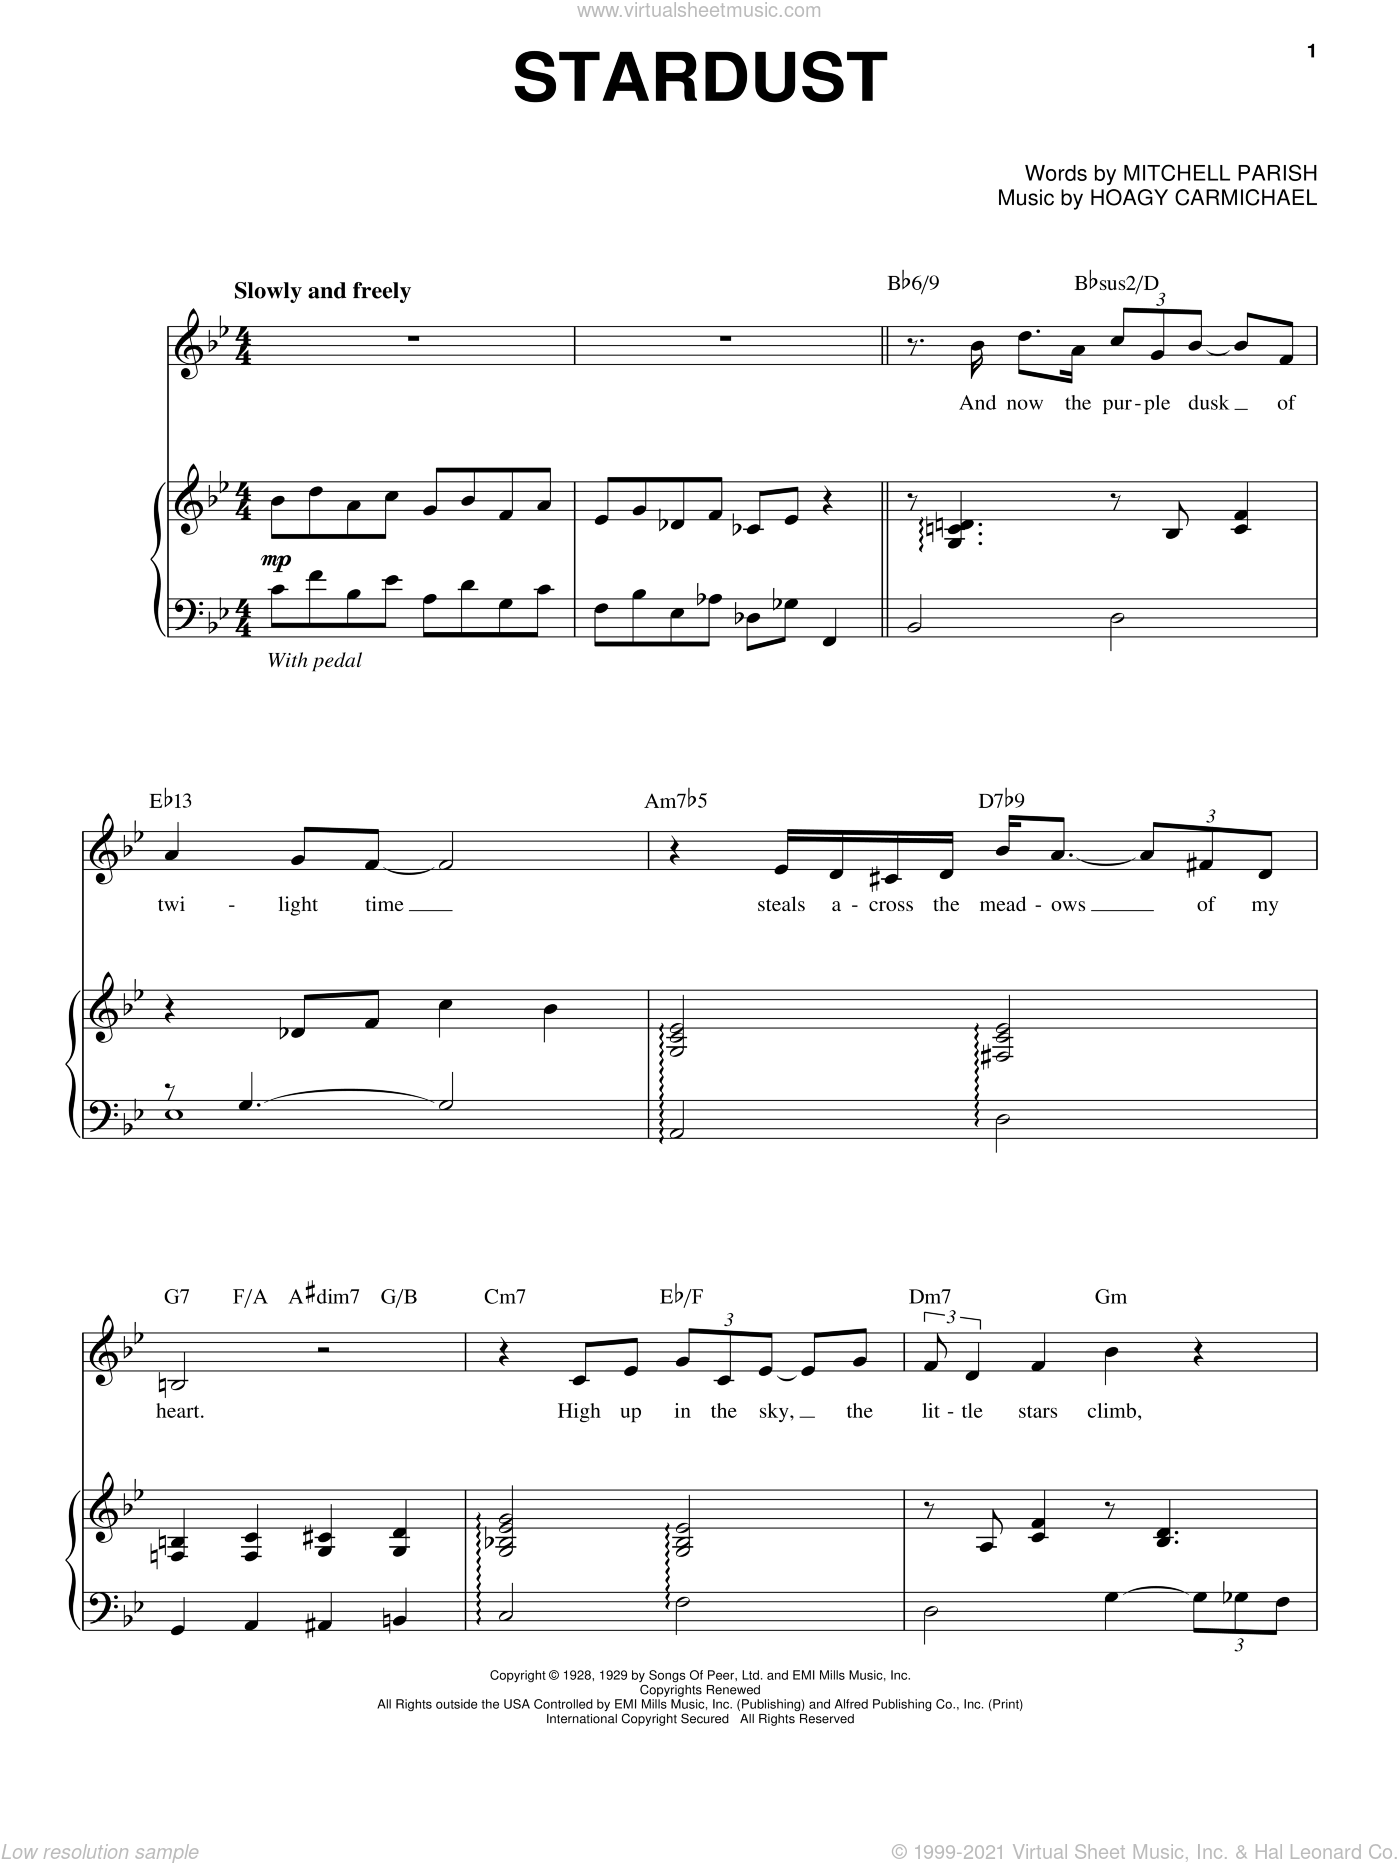 Stardust sheet music for voice and piano by Mitchell Parish